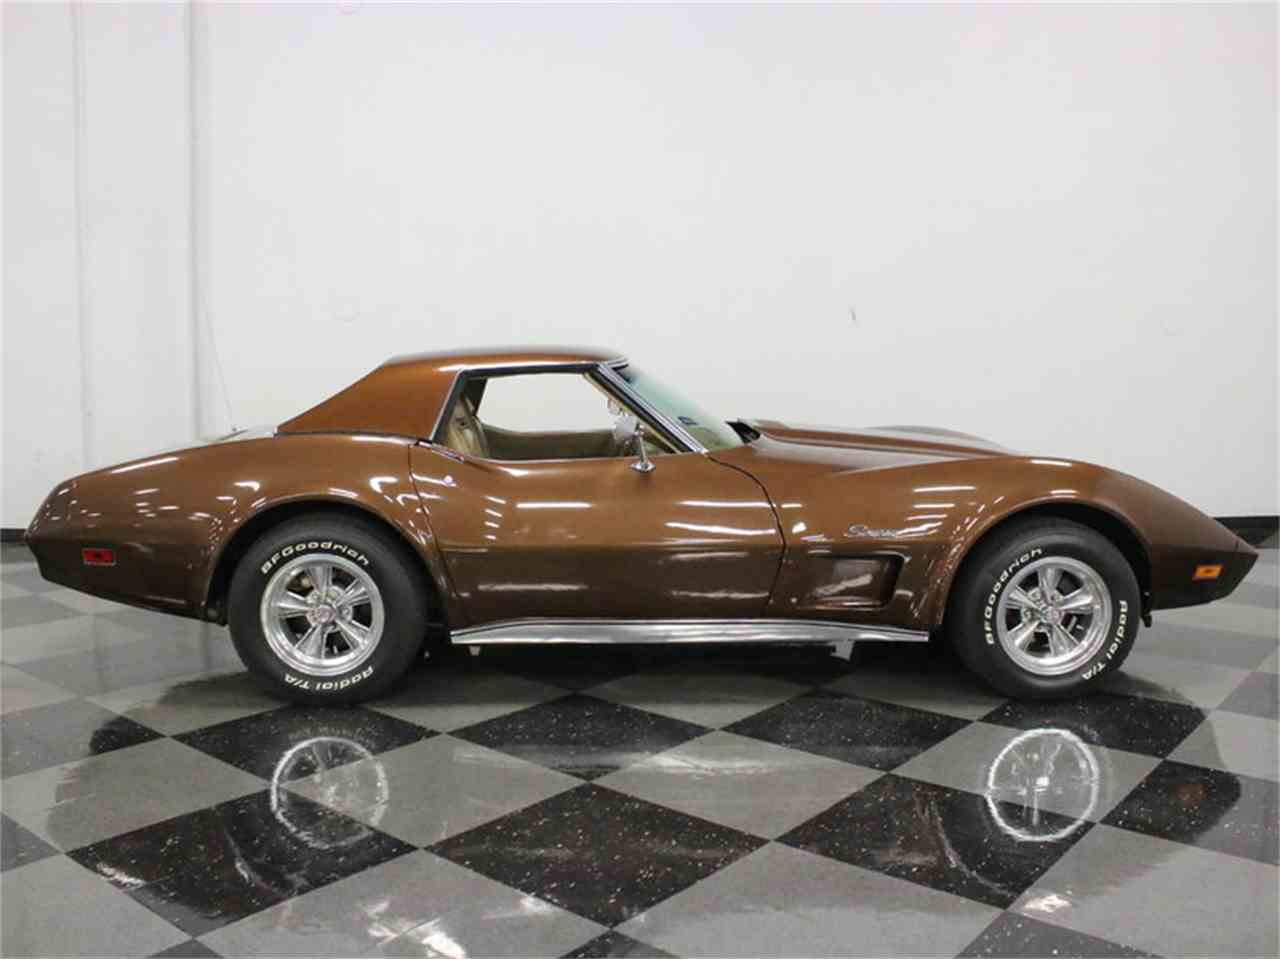 Large Picture of '74 Chevrolet Corvette - $22,995.00 Offered by Streetside Classics - Dallas / Fort Worth - LBK6